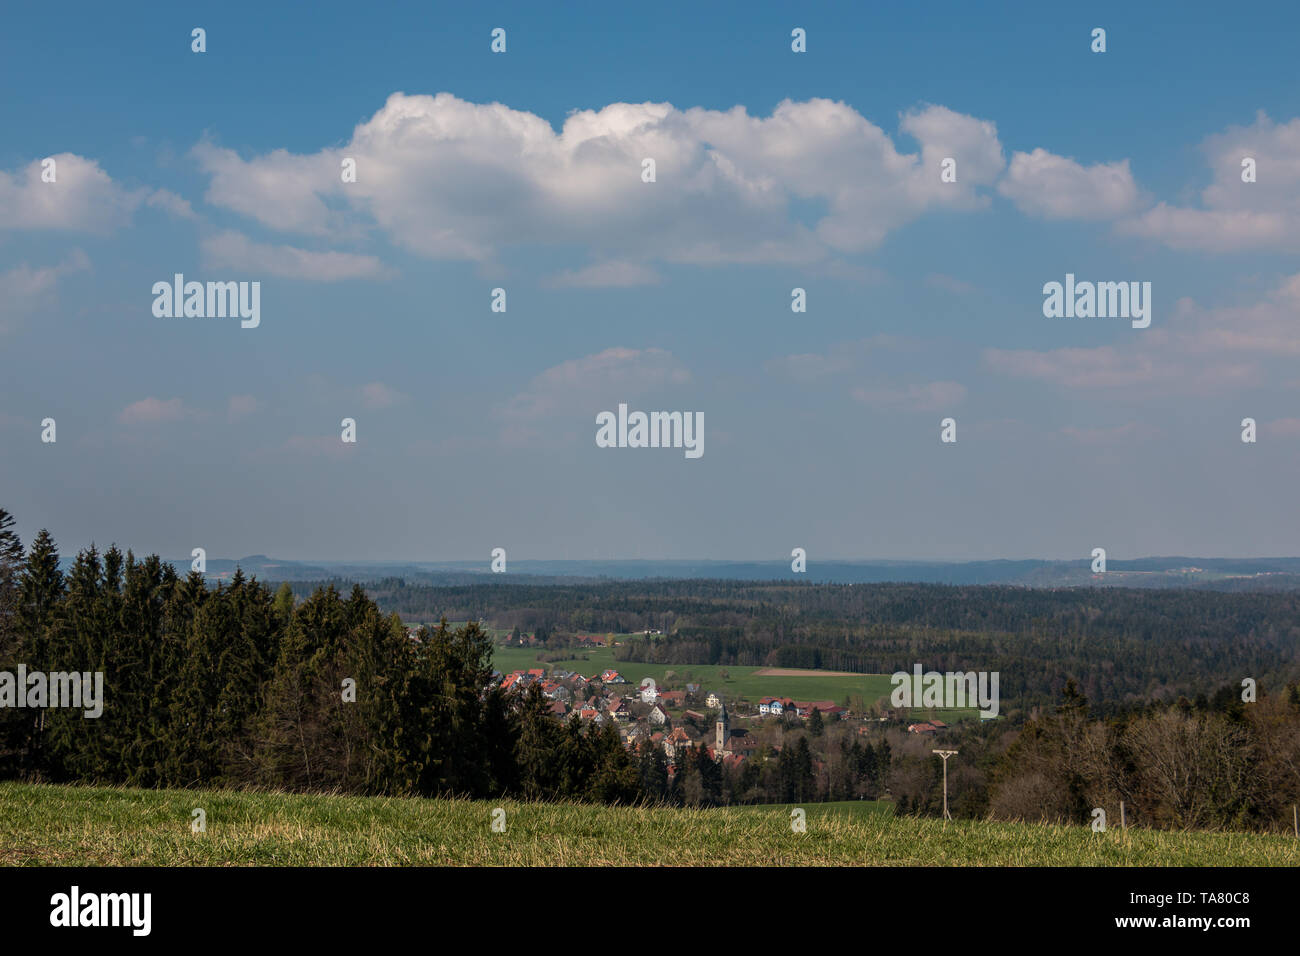 Little village in the middle of the german countryside with hills, forests, fields and meadows - Stock Image